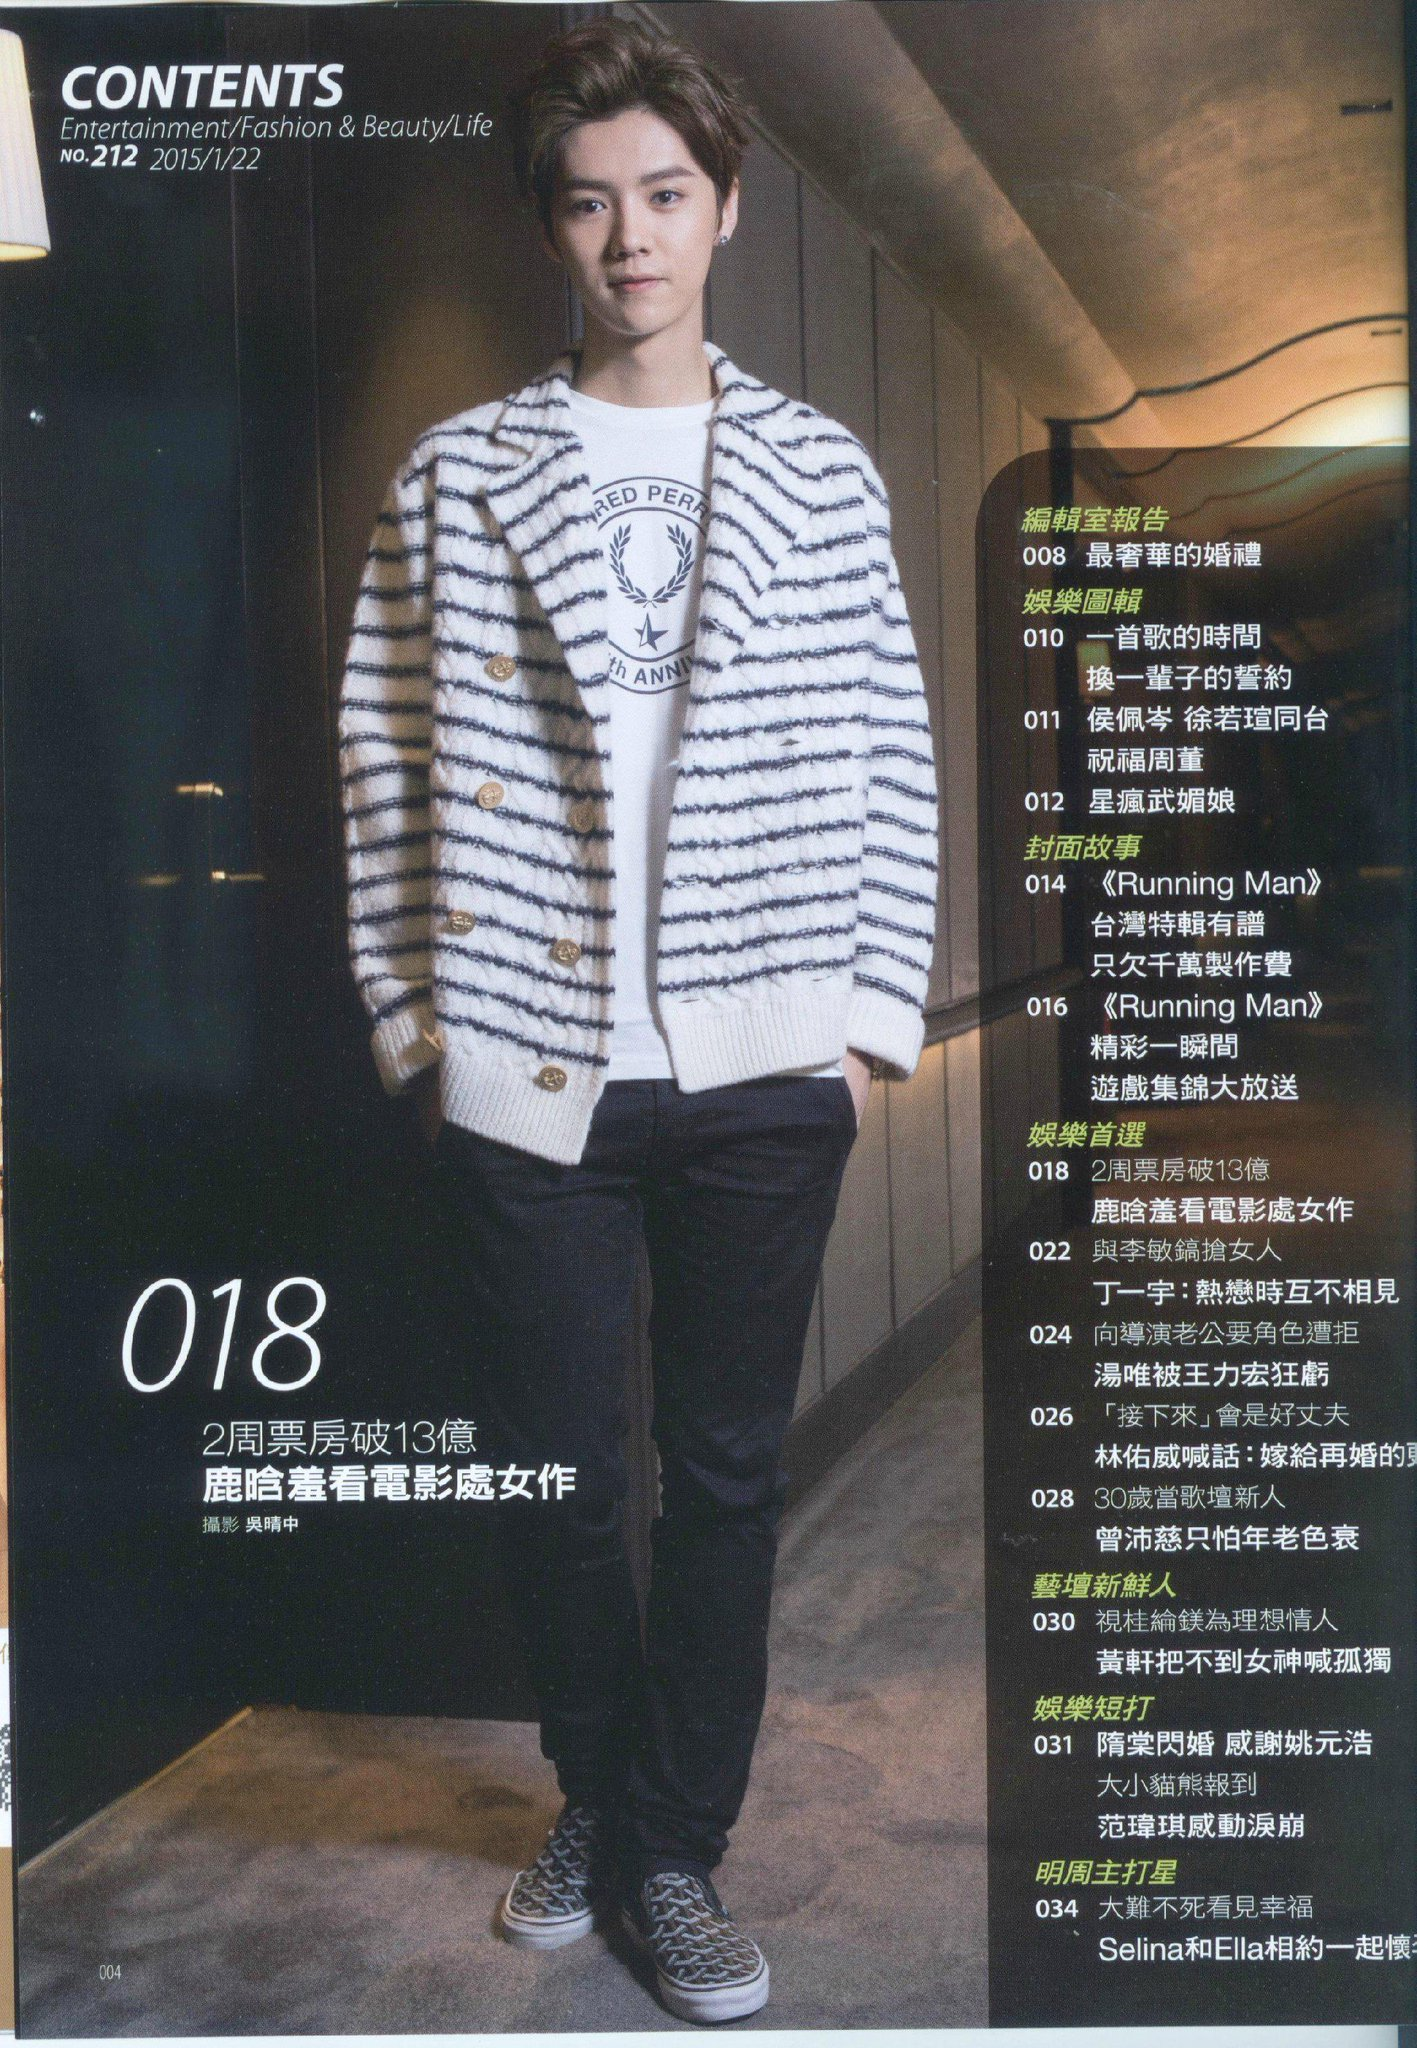 [TRANS] Ming Weekly Interview CB6hx_AWIAM6UH4